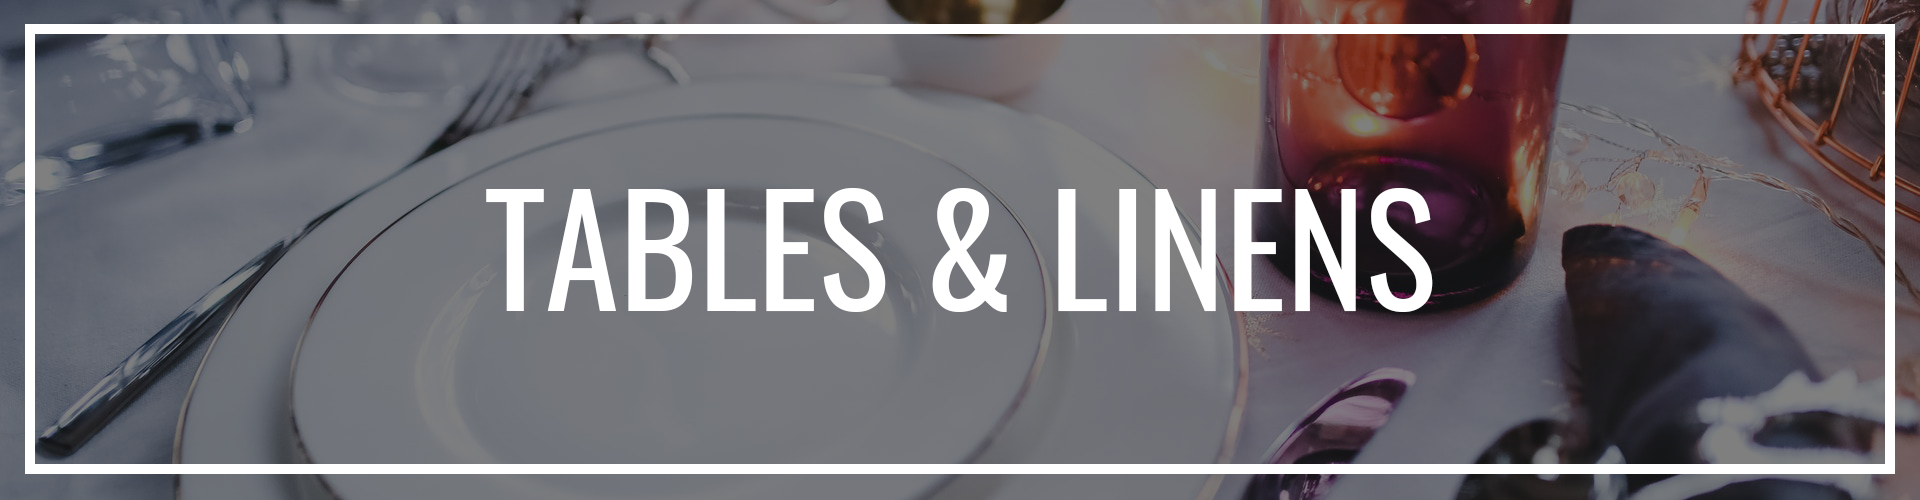 TABLES & LINENS LOGO